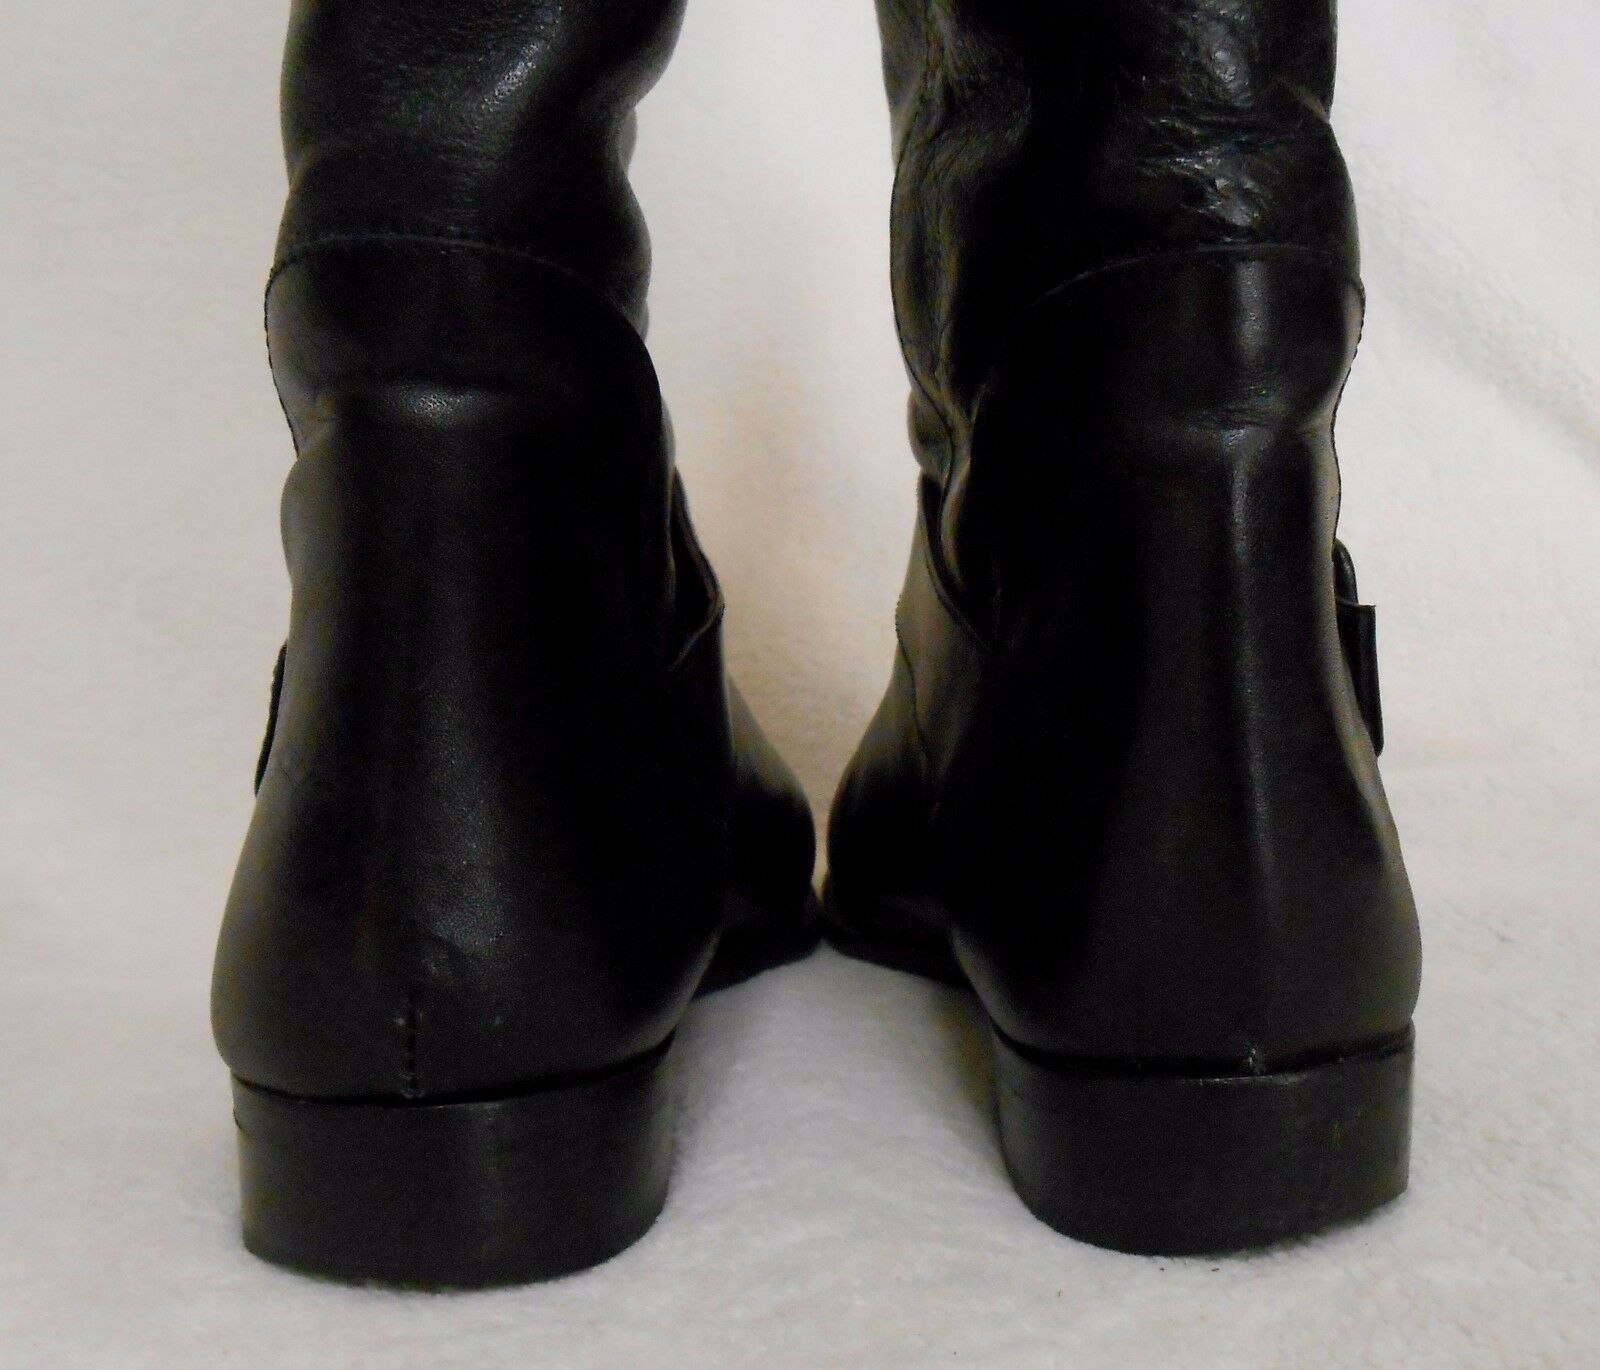 PETIT FLEUR BLACK LEATHER HIGH Stiefel, MADE IN IN IN ITALY, SIZE 40 EURO-9, WITH BOX  82a171